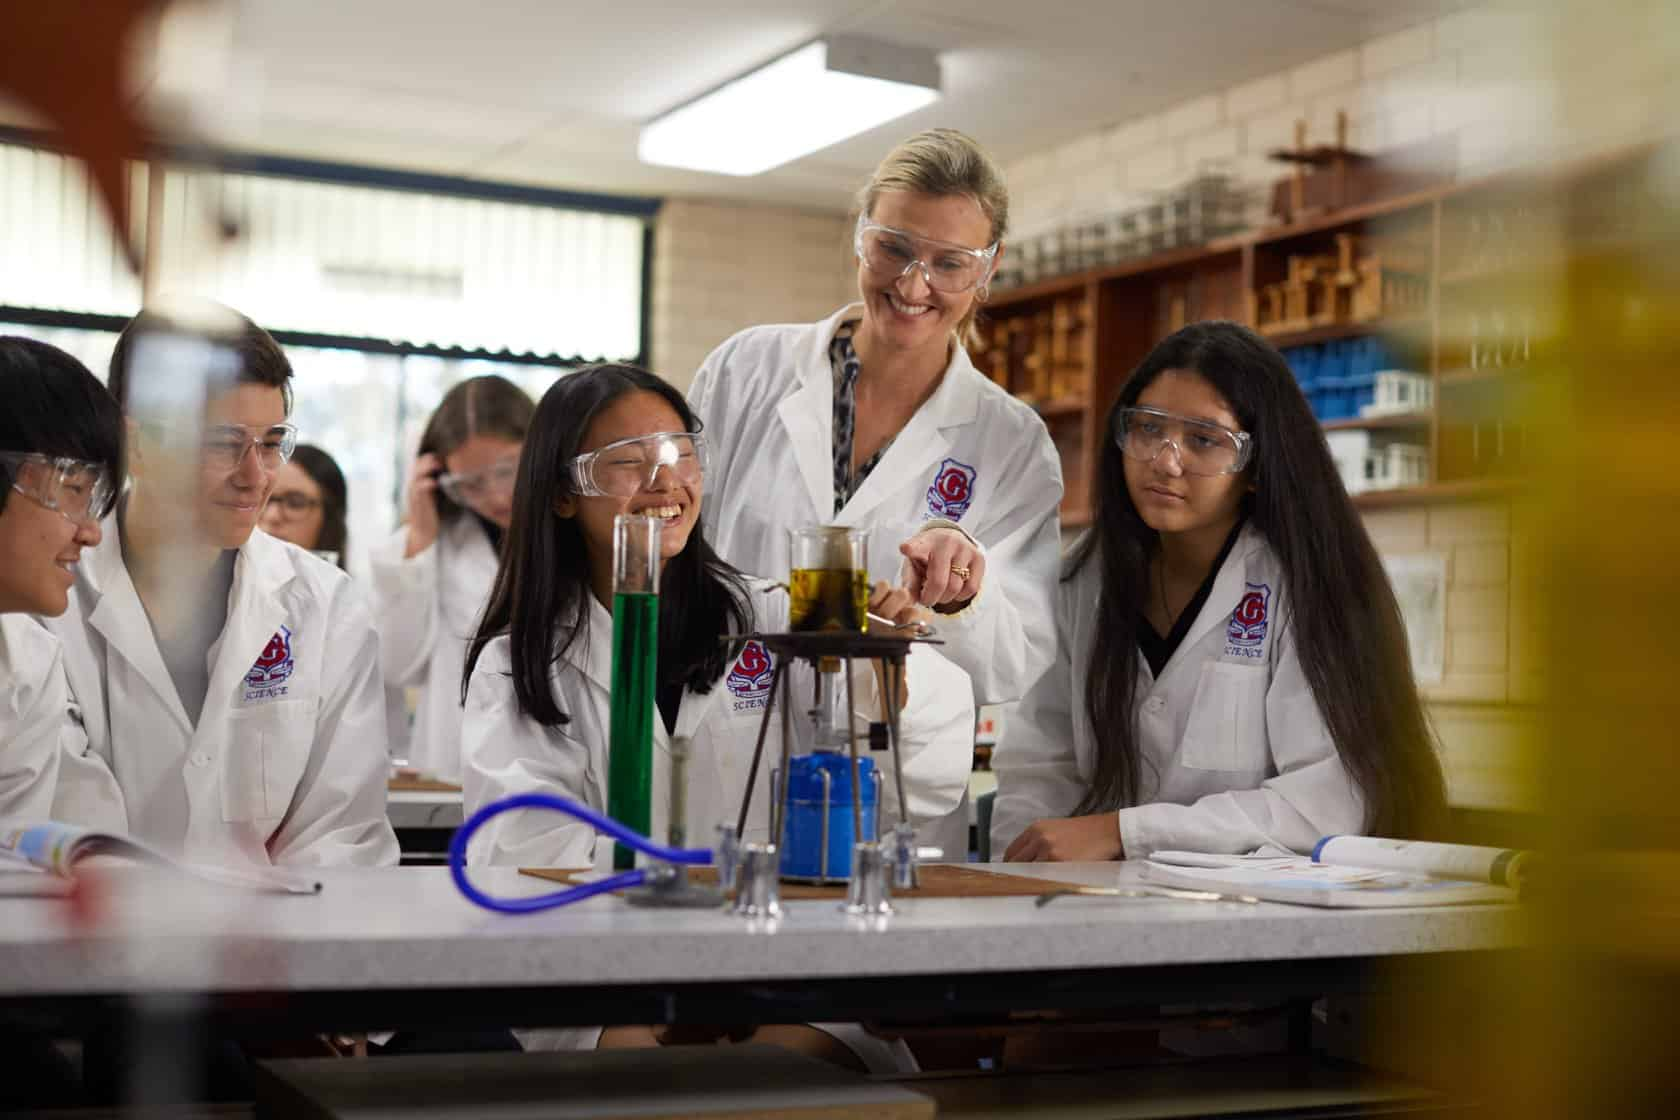 High School Western Australien | High School Perth